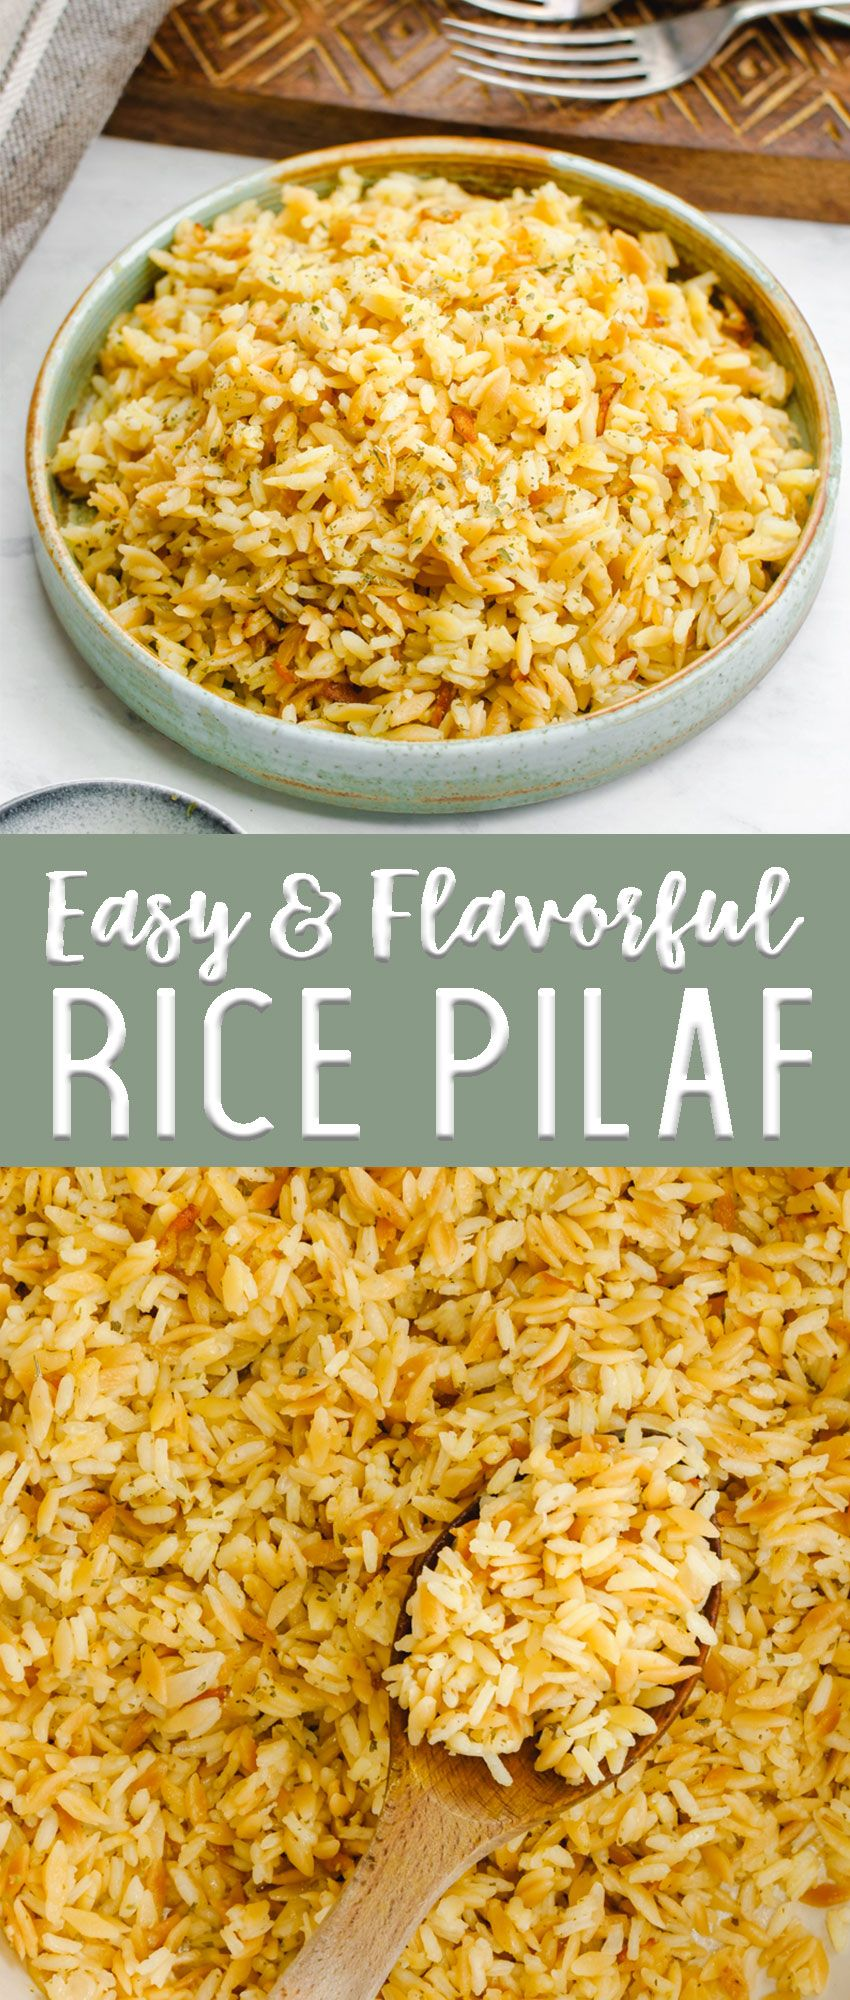 Easy Rice Pilaf images